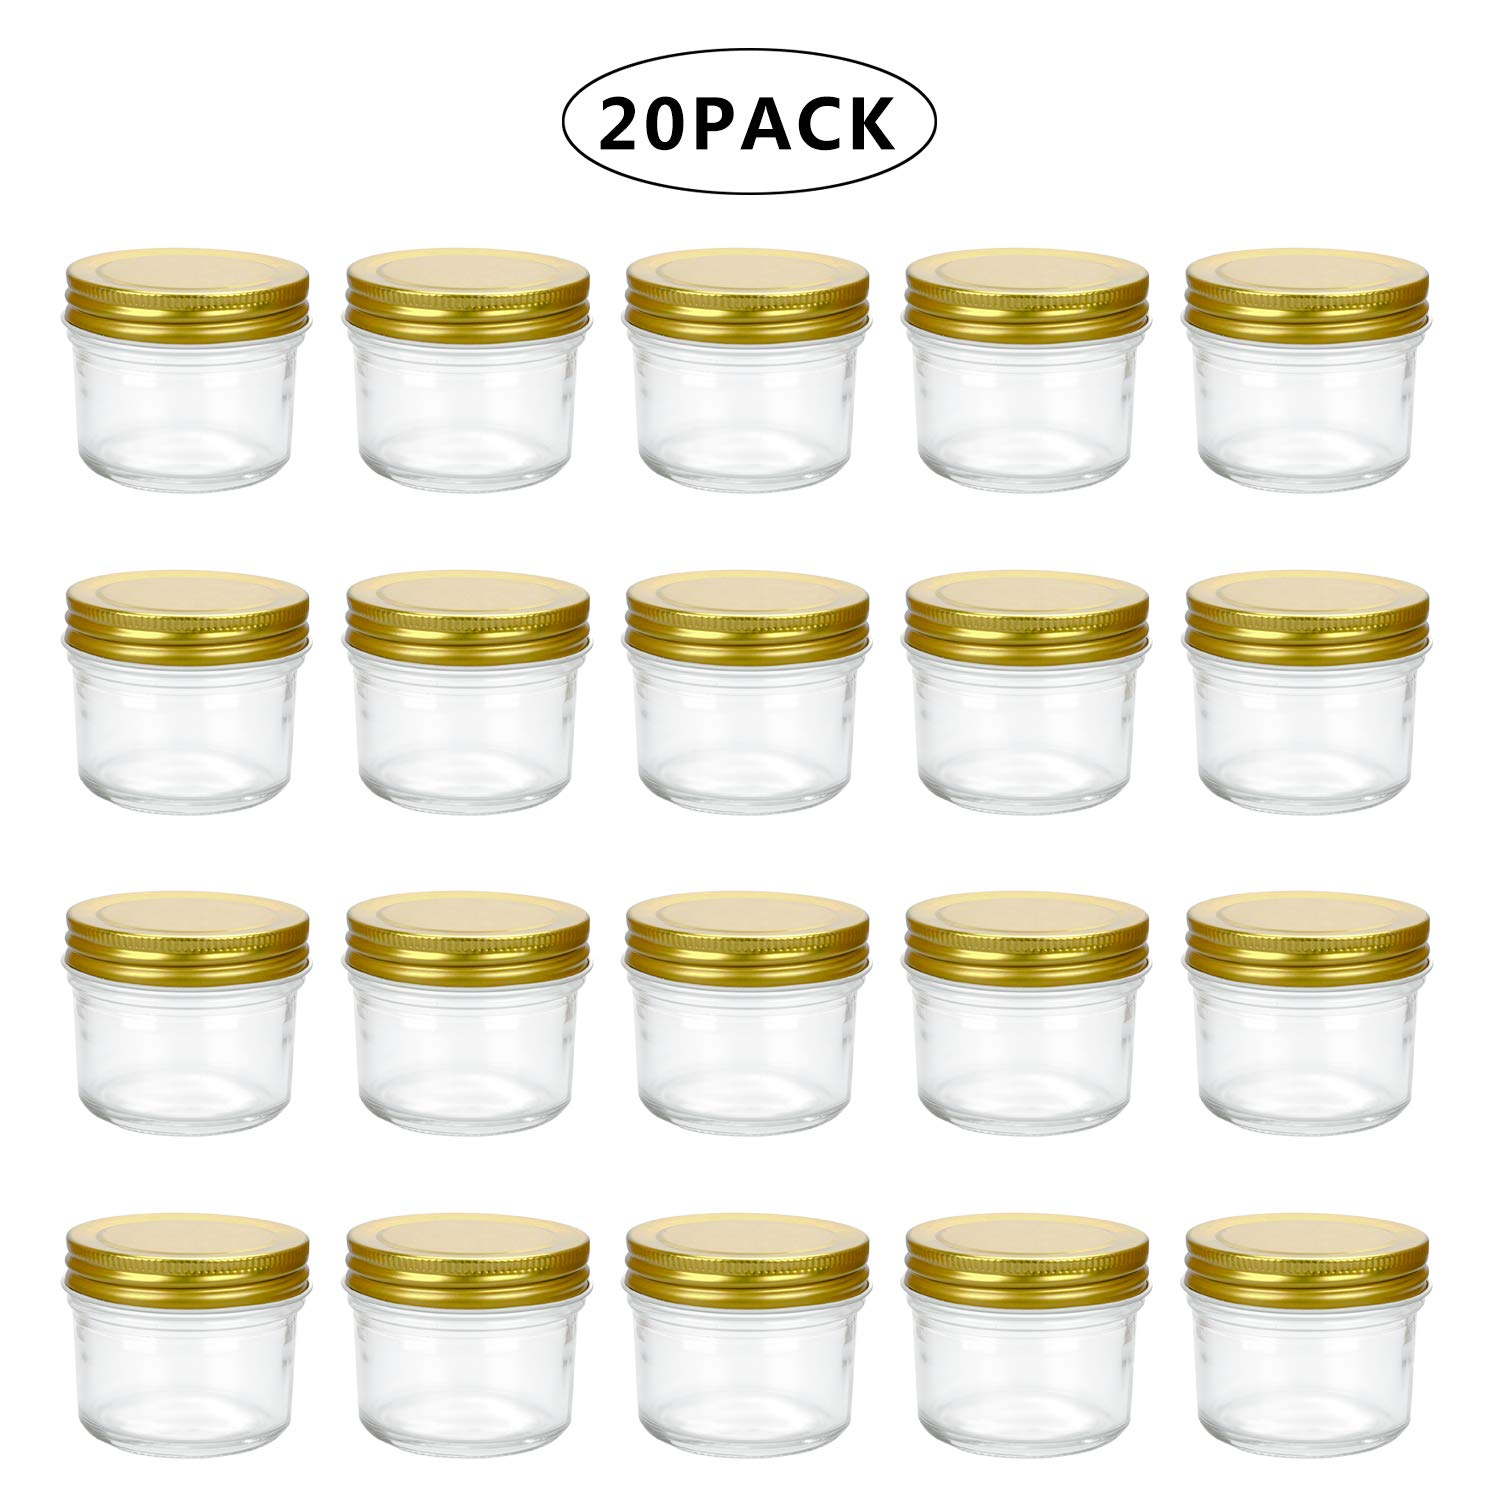 Encheng 4 oz Clear Glass Jars With Lids(Golden),Small Spice Jars For Herb,Jelly,Jams,Wide Mouth Mason Jars Canning Jars For Kitchen Storage 20 Pack …